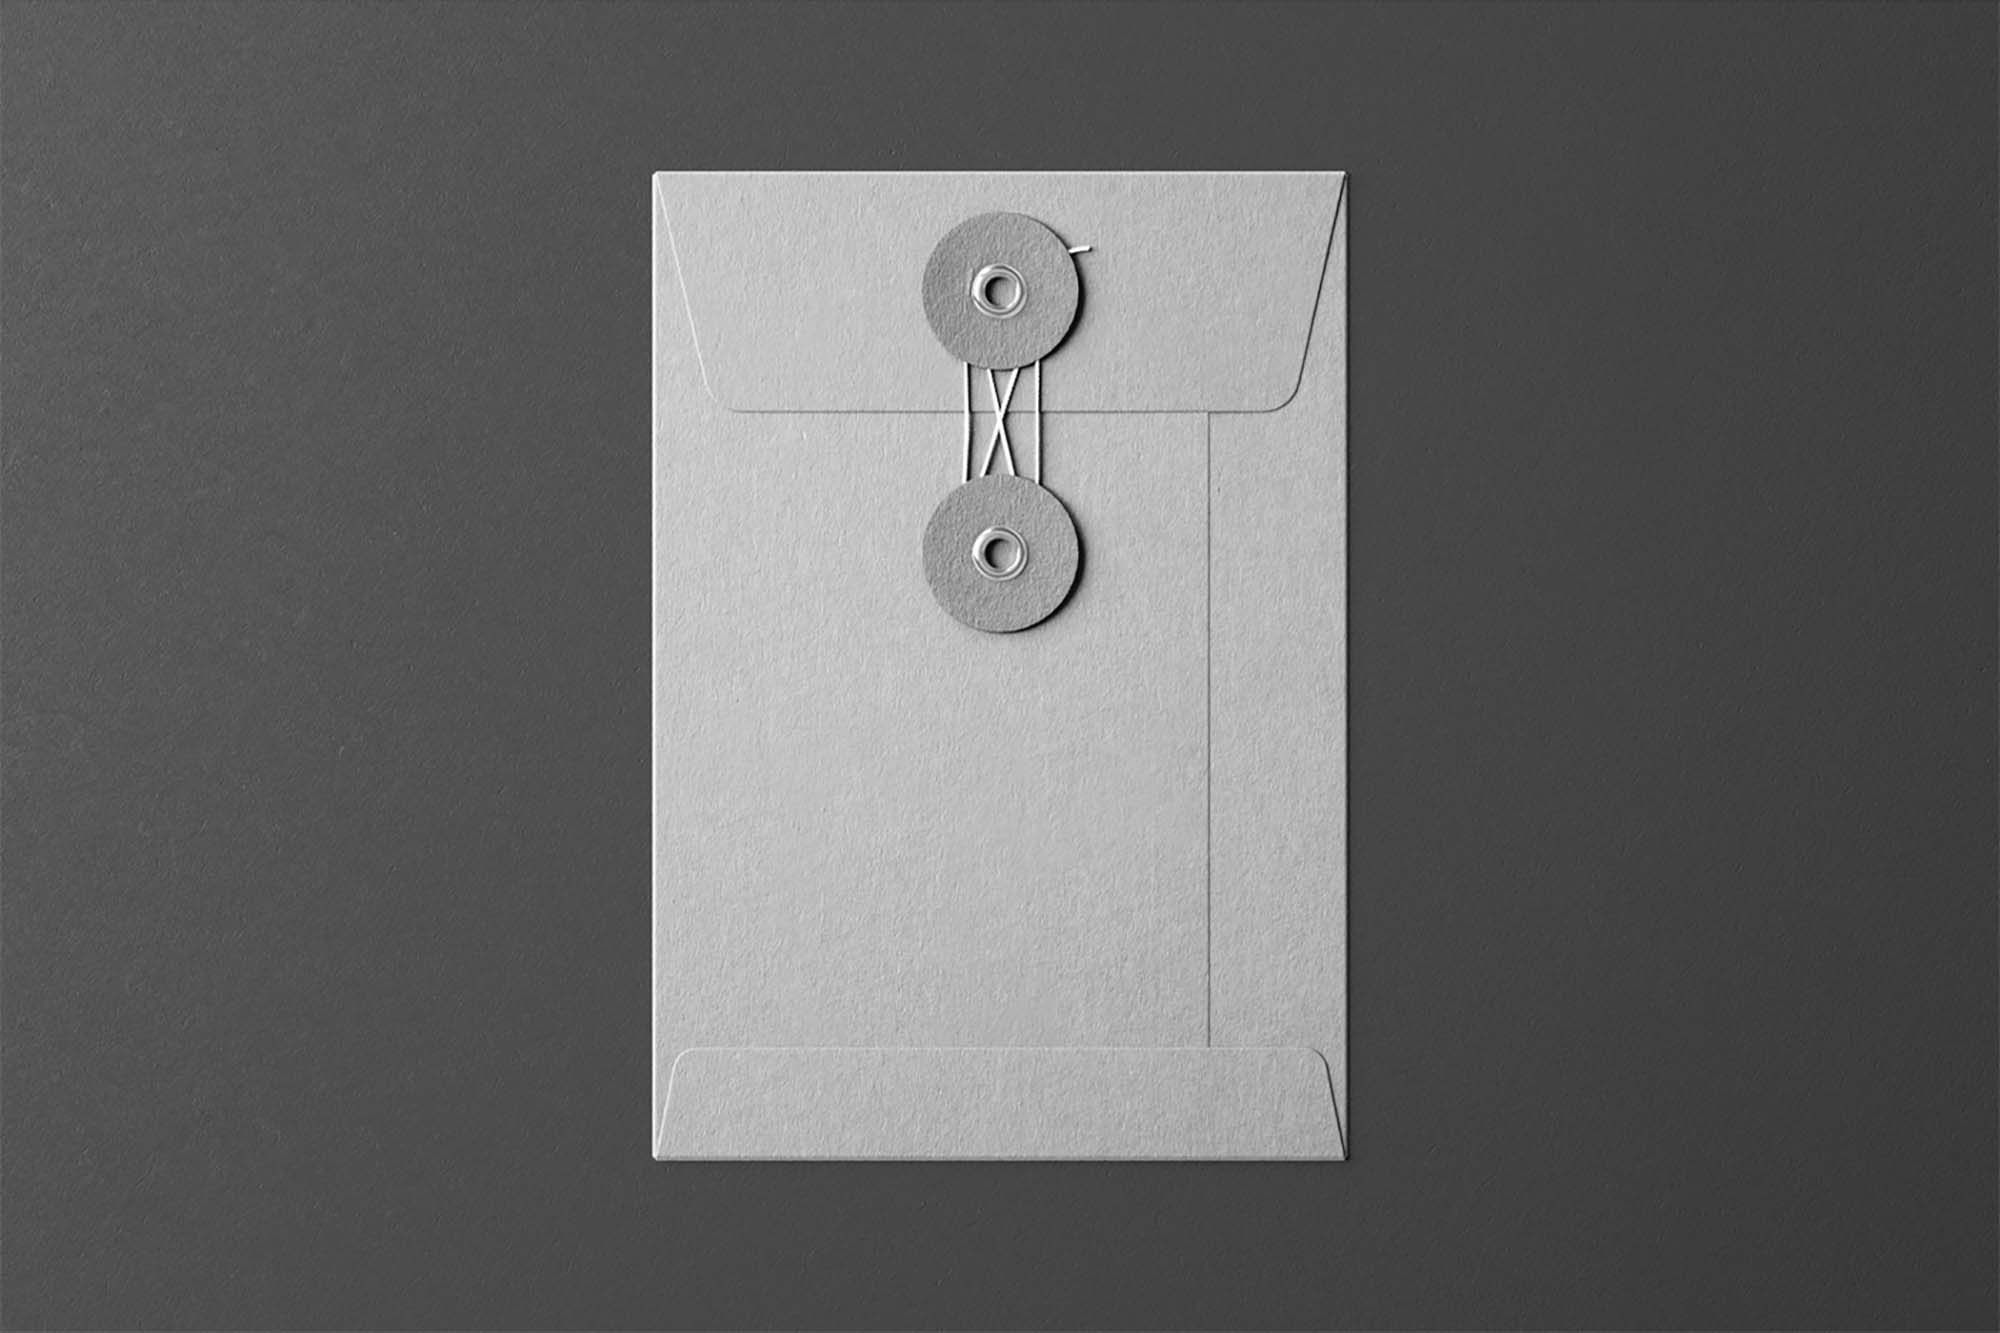 Small String Envelope Mockup 2